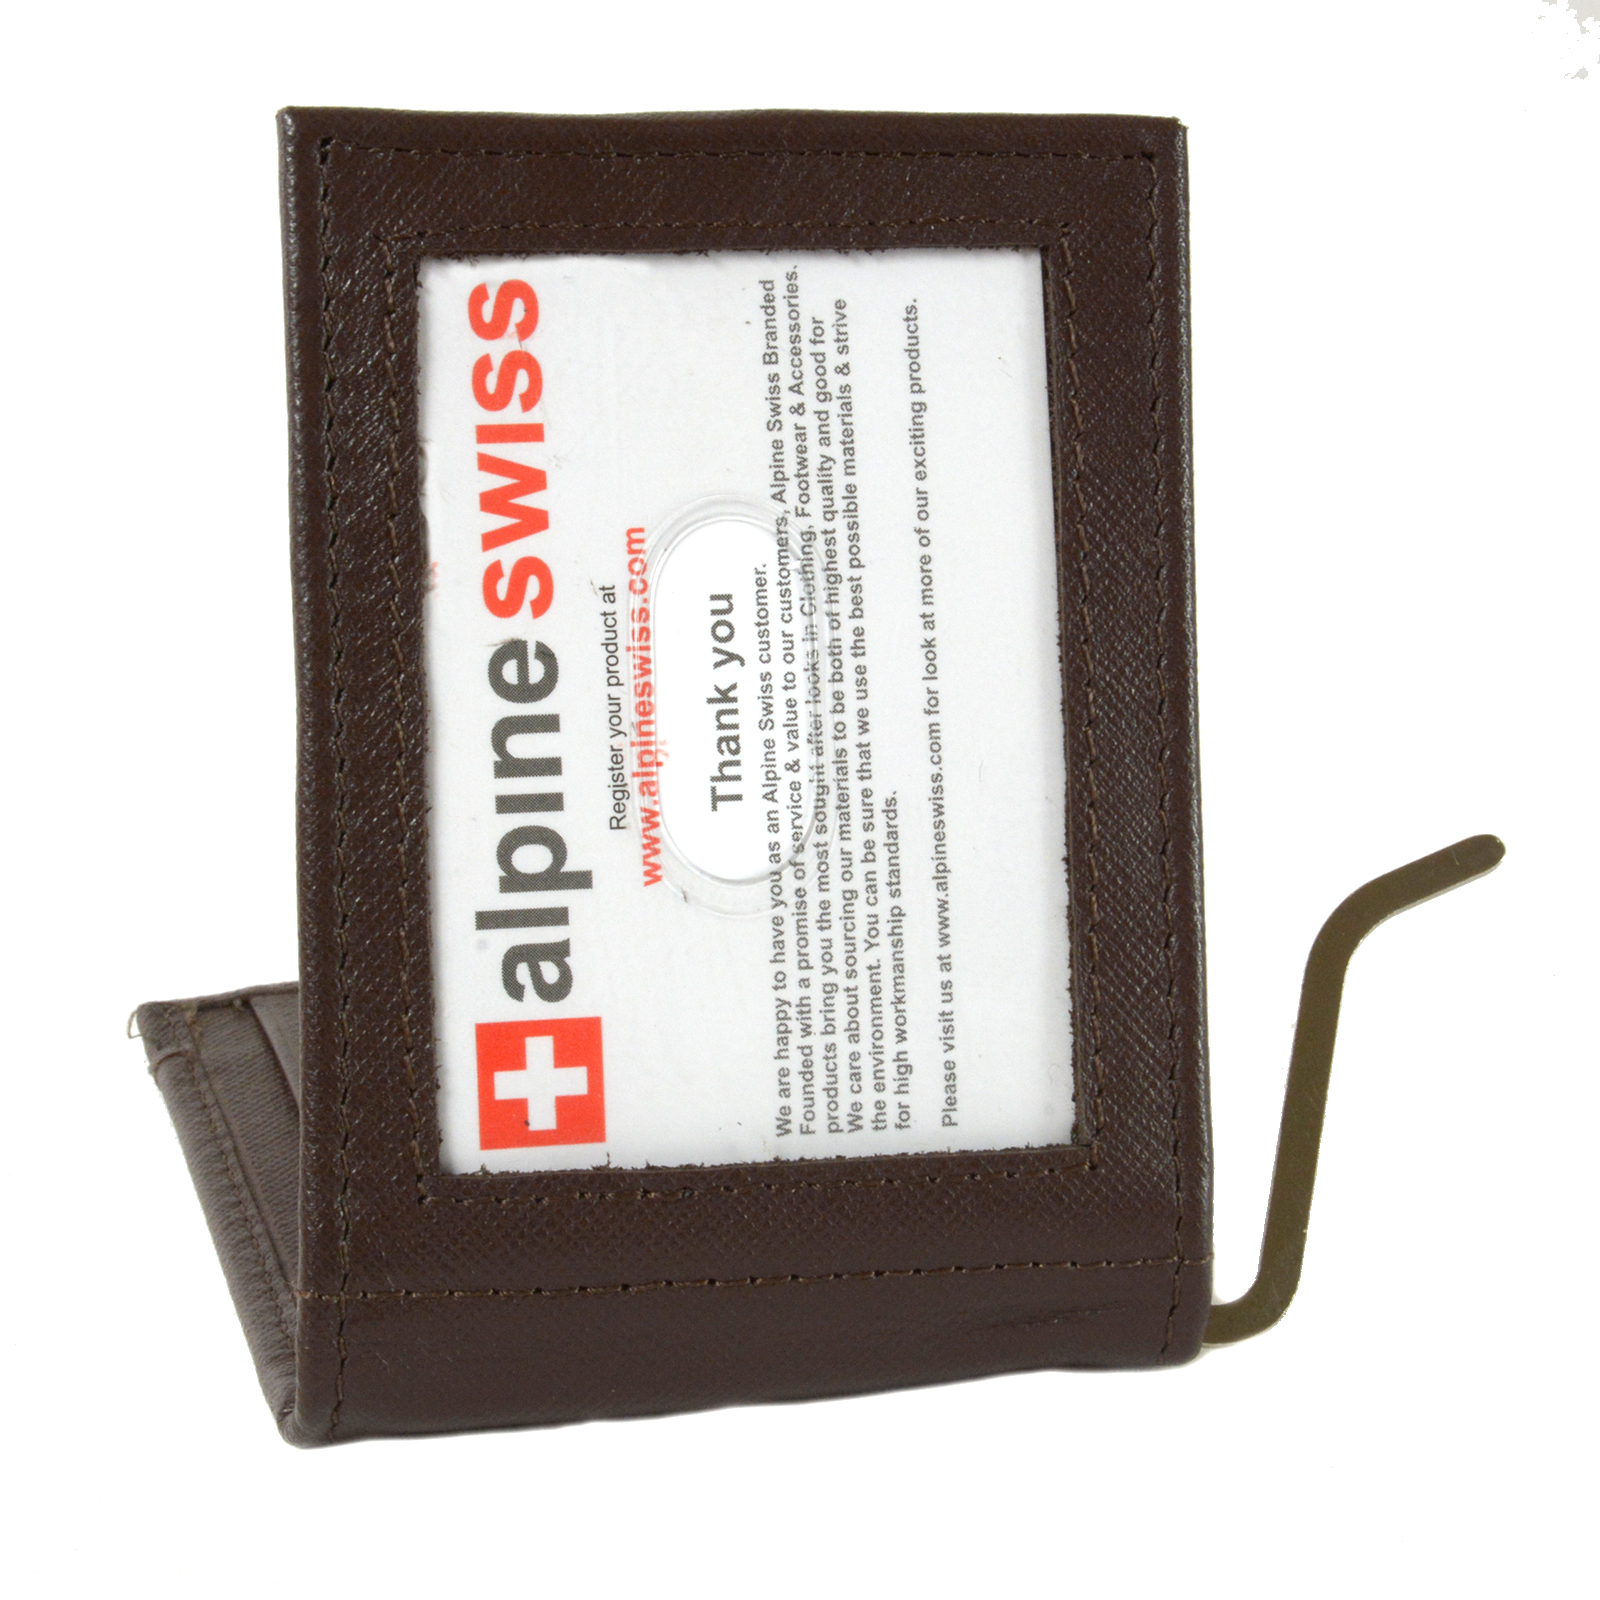 Alpine-Swiss-Mens-Bifold-Money-Clip-Spring-Loaded-Leather-ID-Front-Pocket-Wallet thumbnail 59